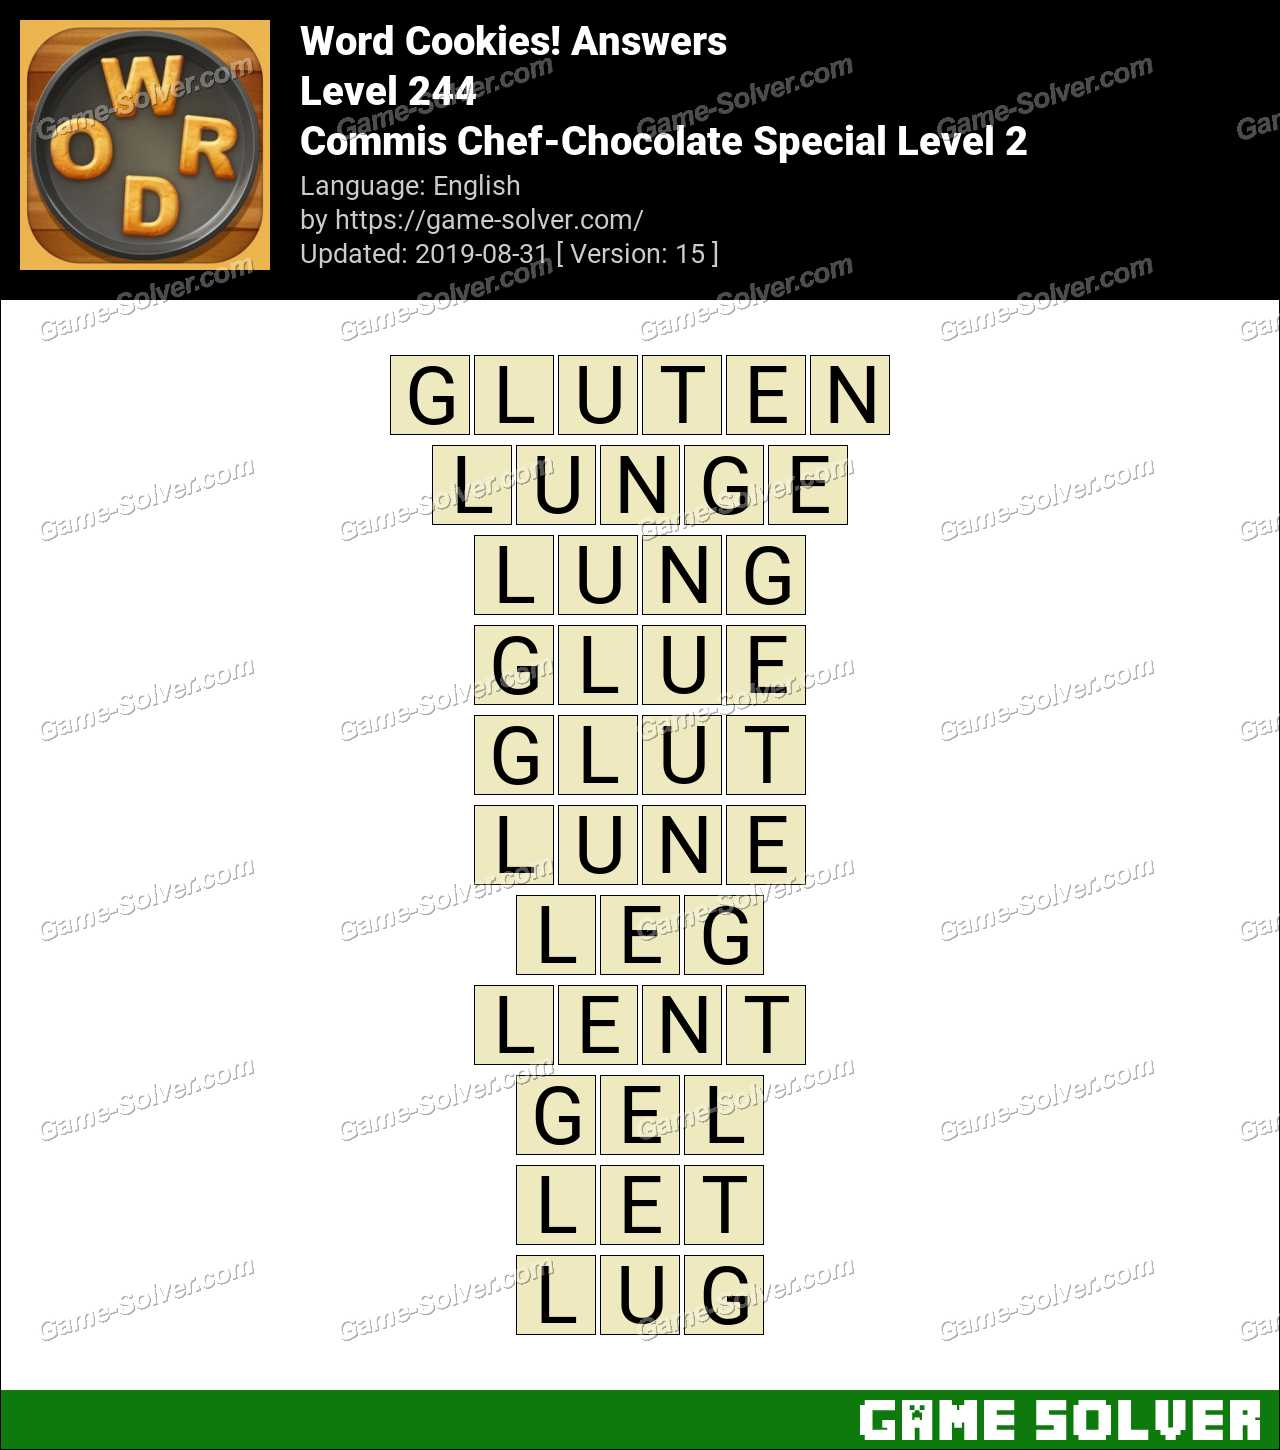 Word Cookies Commis Chef-Chocolate Special Level 2 Answers